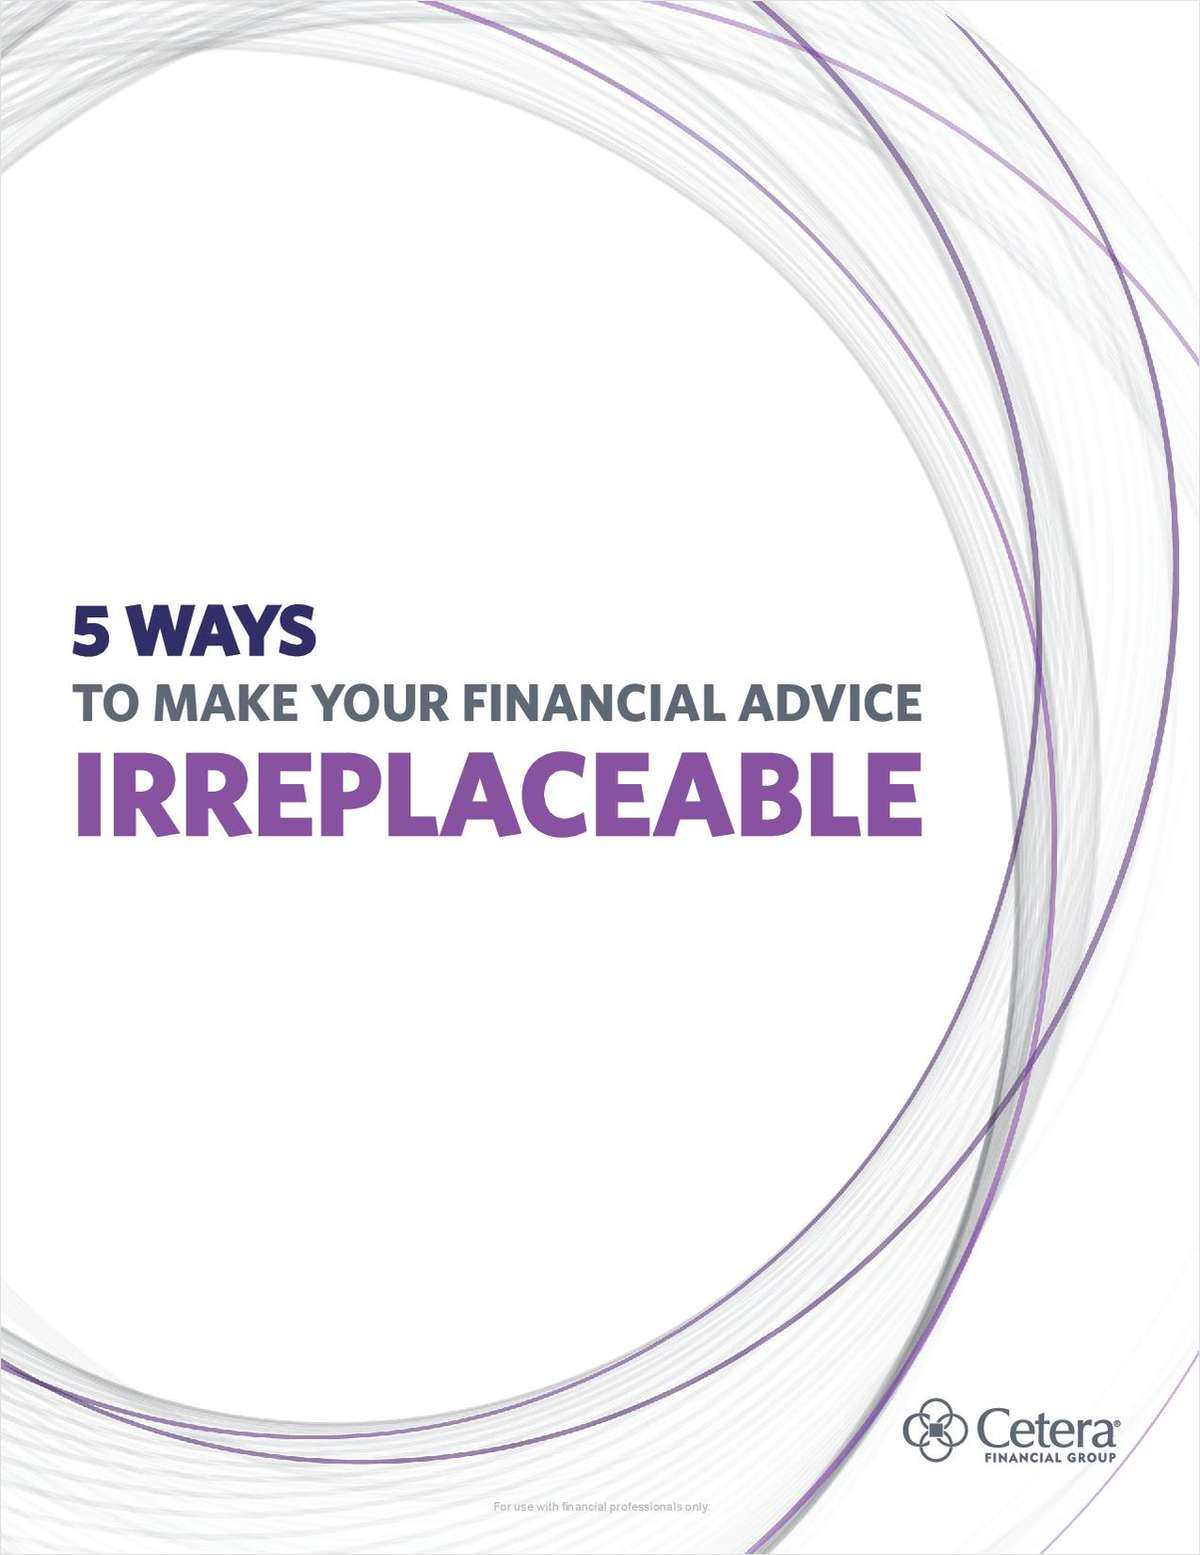 5 Ways to Make Your Financial Advice Irreplaceable